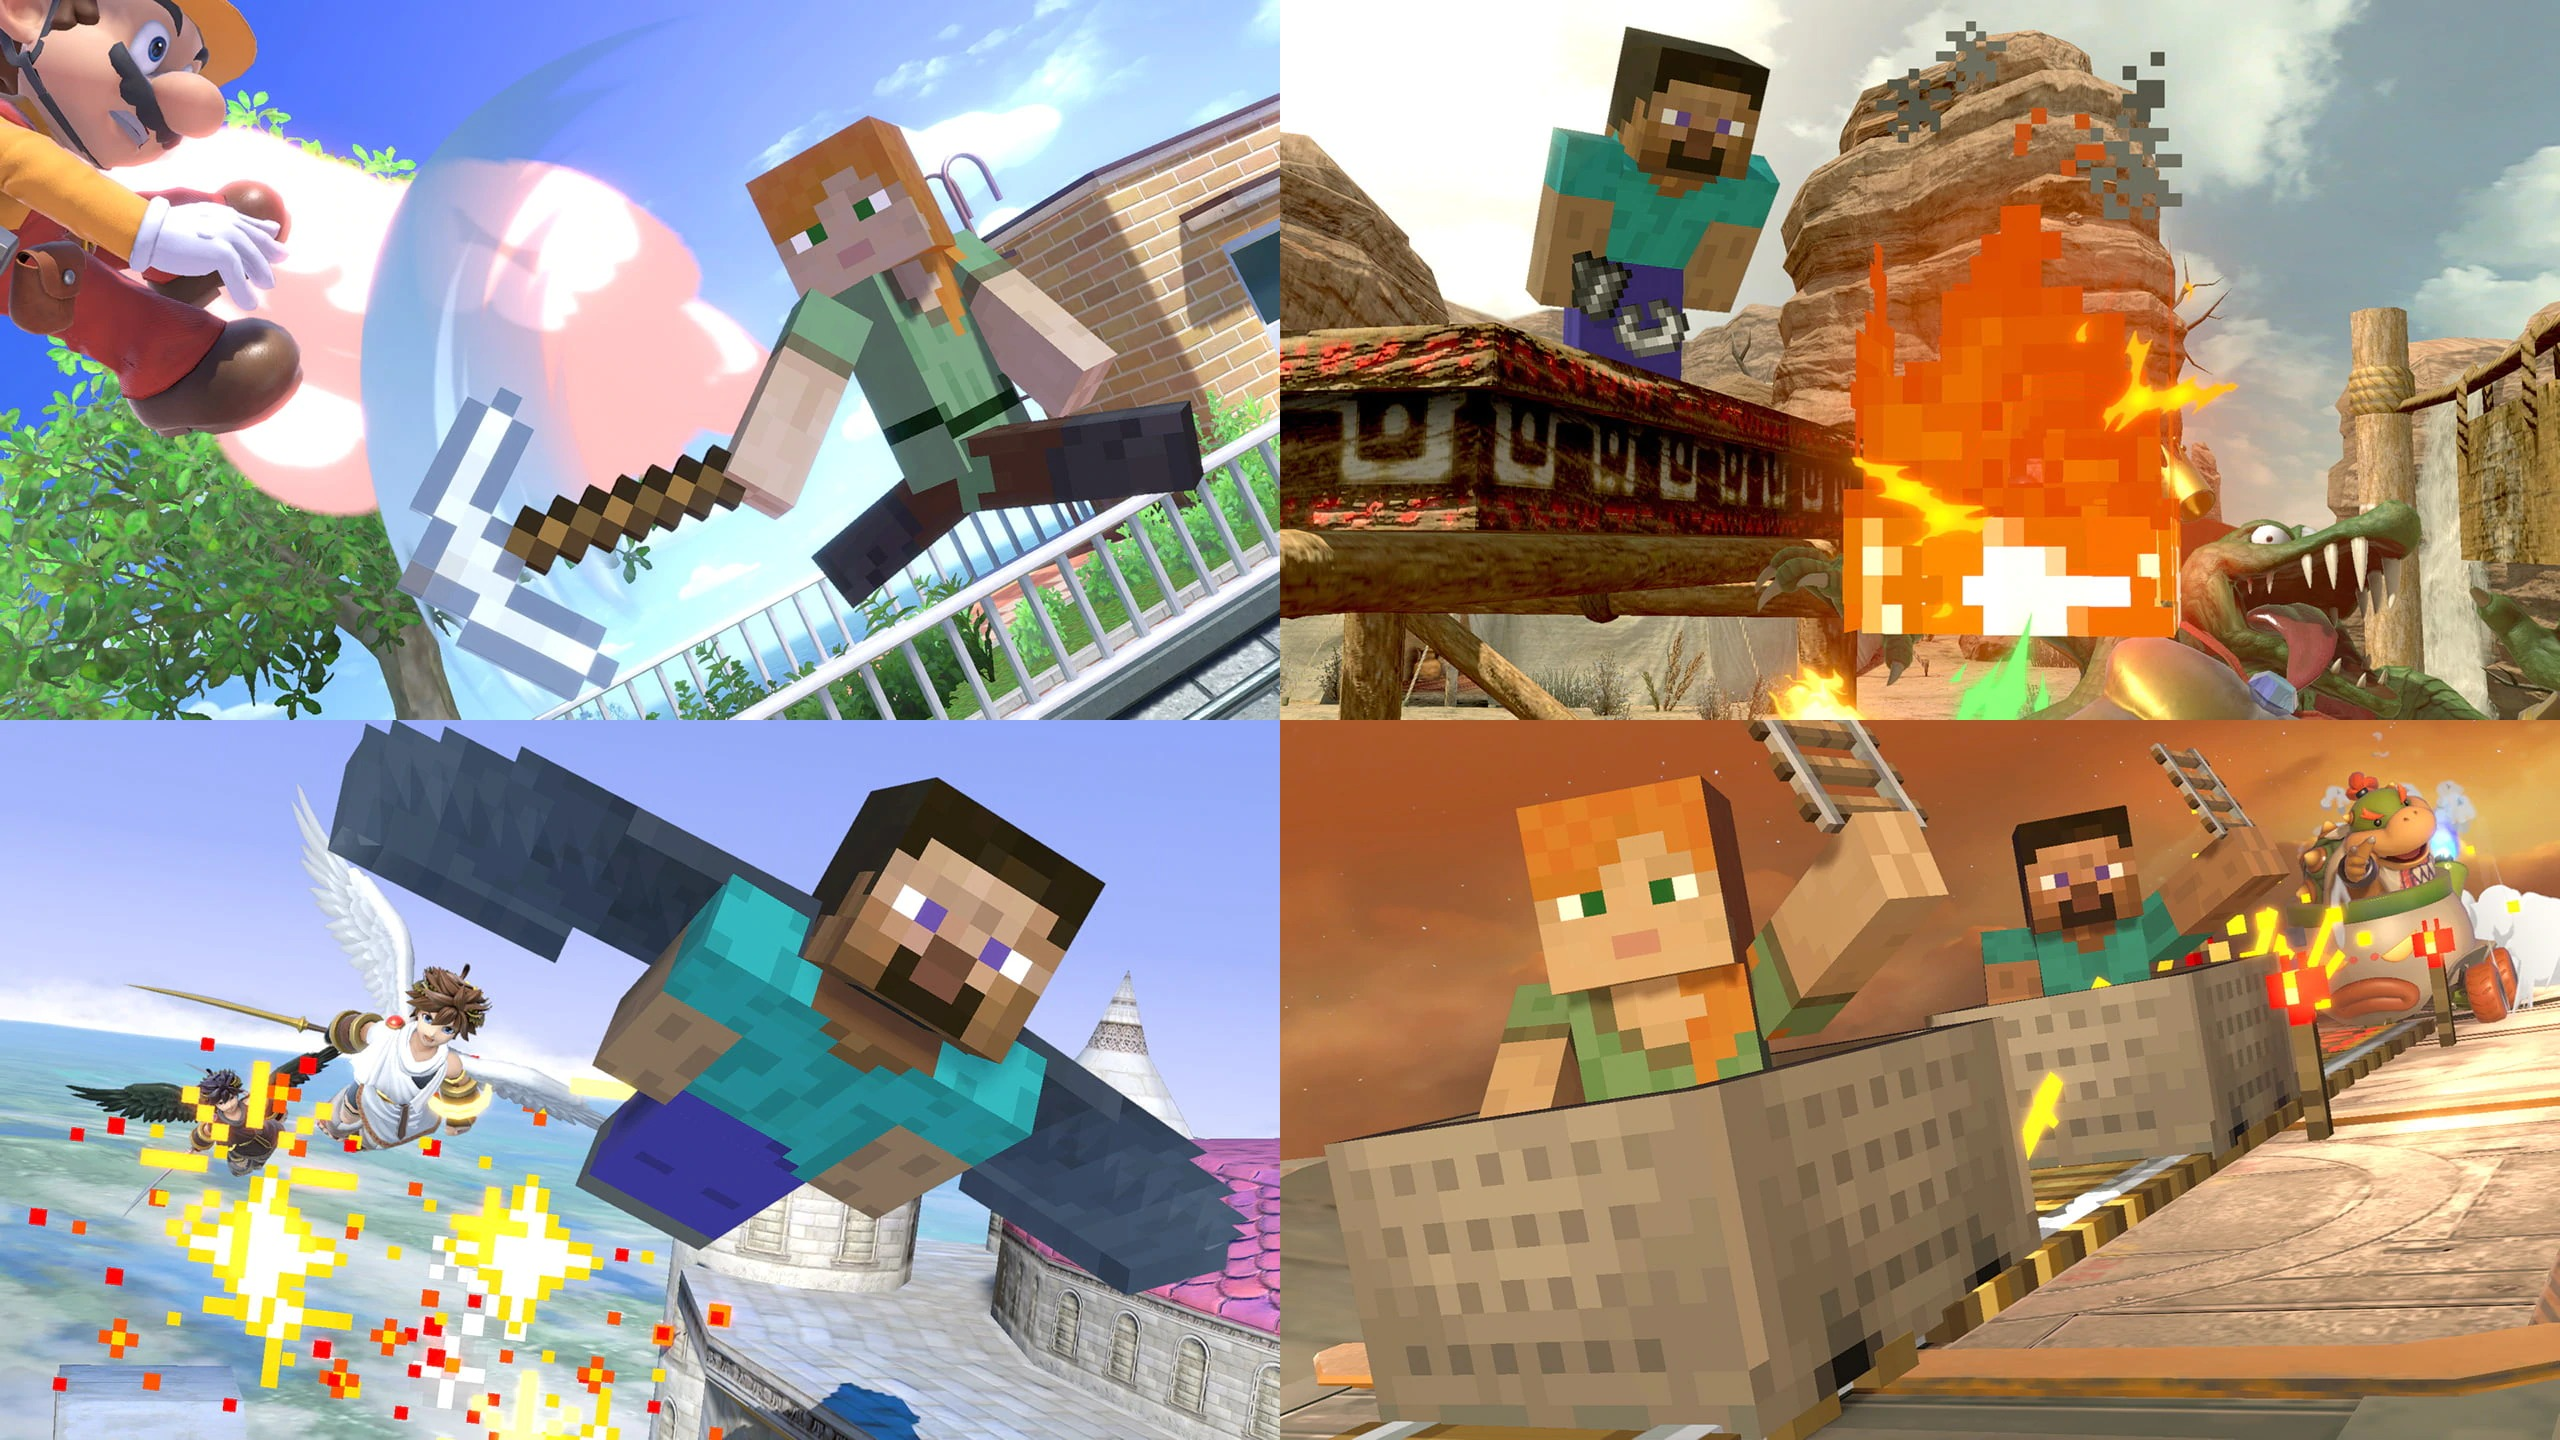 Cinematicas minecraft